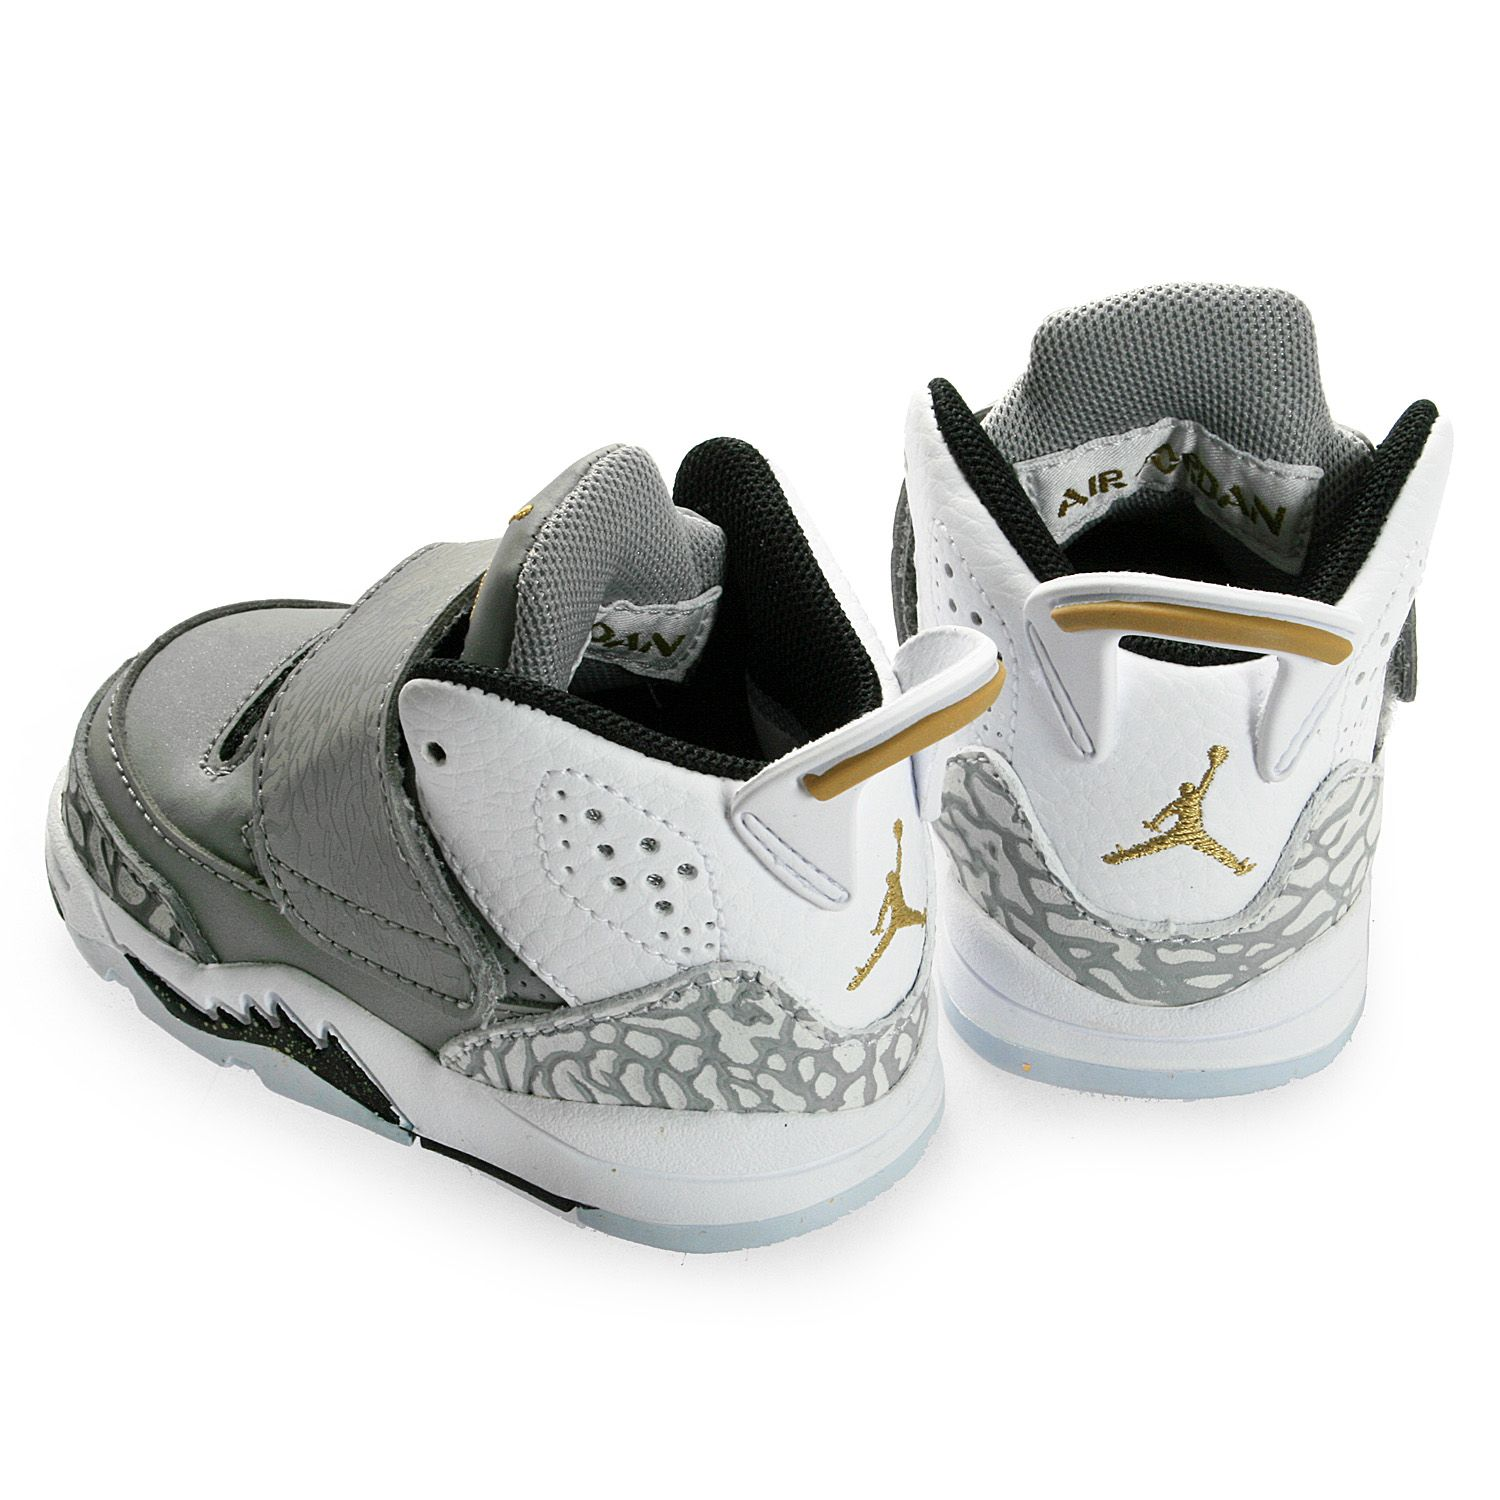 Newborn Baby Boy Nike Shoes | Newborn Baby Jordan Shoes. Nike Shoes For  Baby Girls